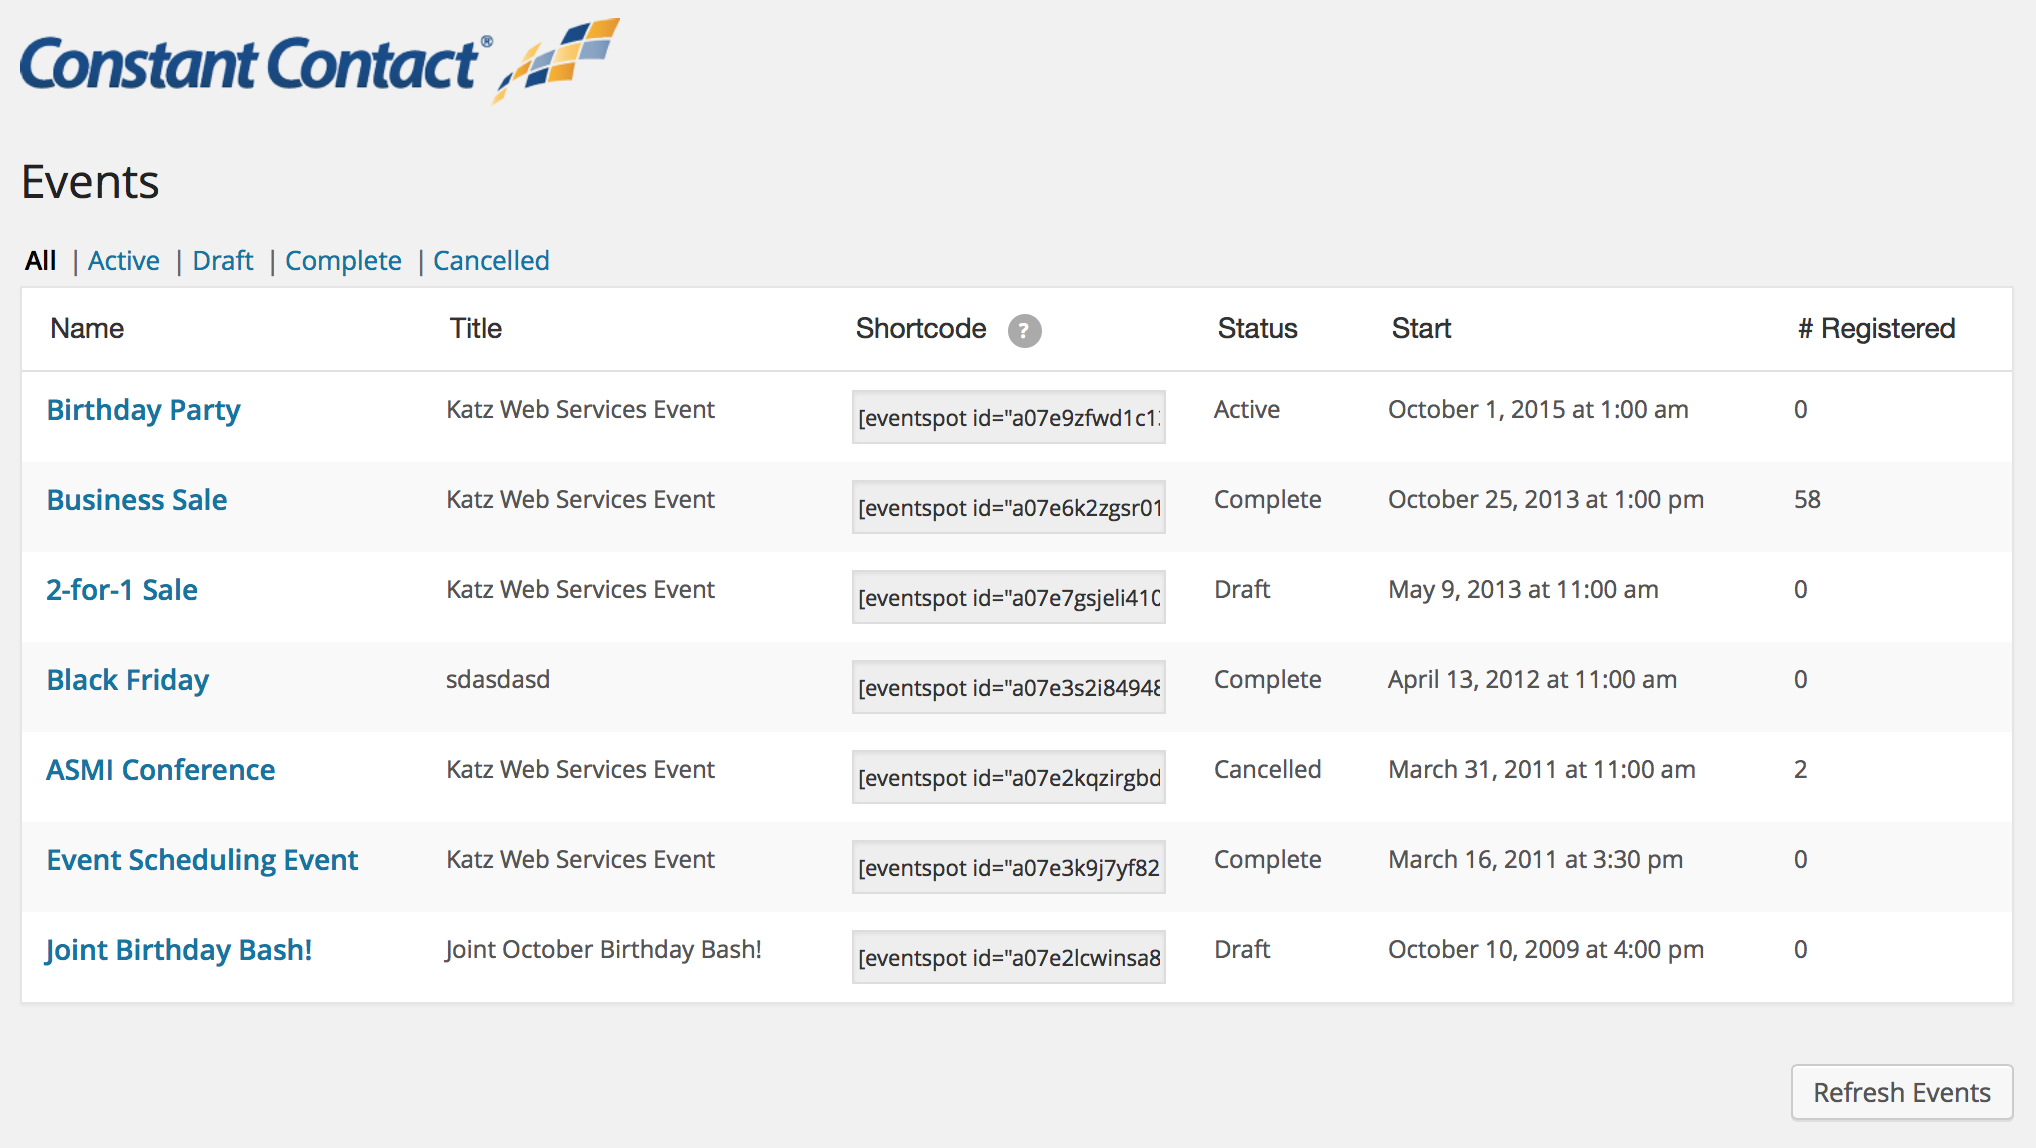 Embed Events inline and view EventSpot event details